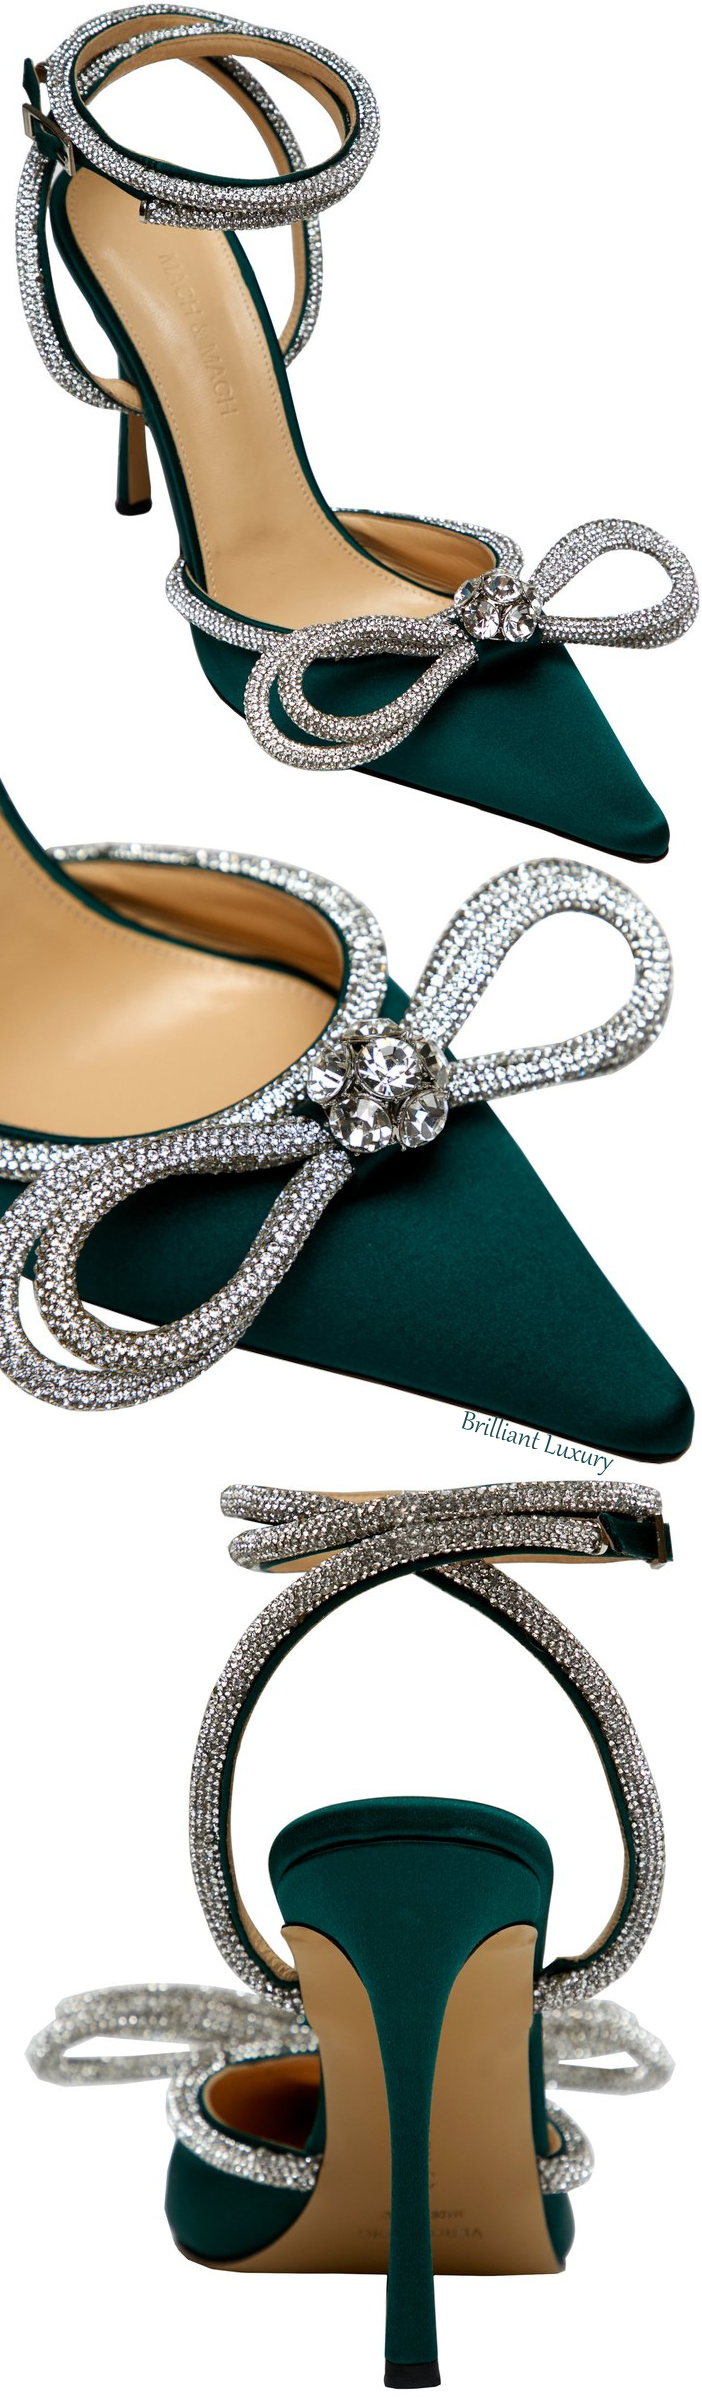 Mach & Mach green crystal double bow pump #brilliantluxury